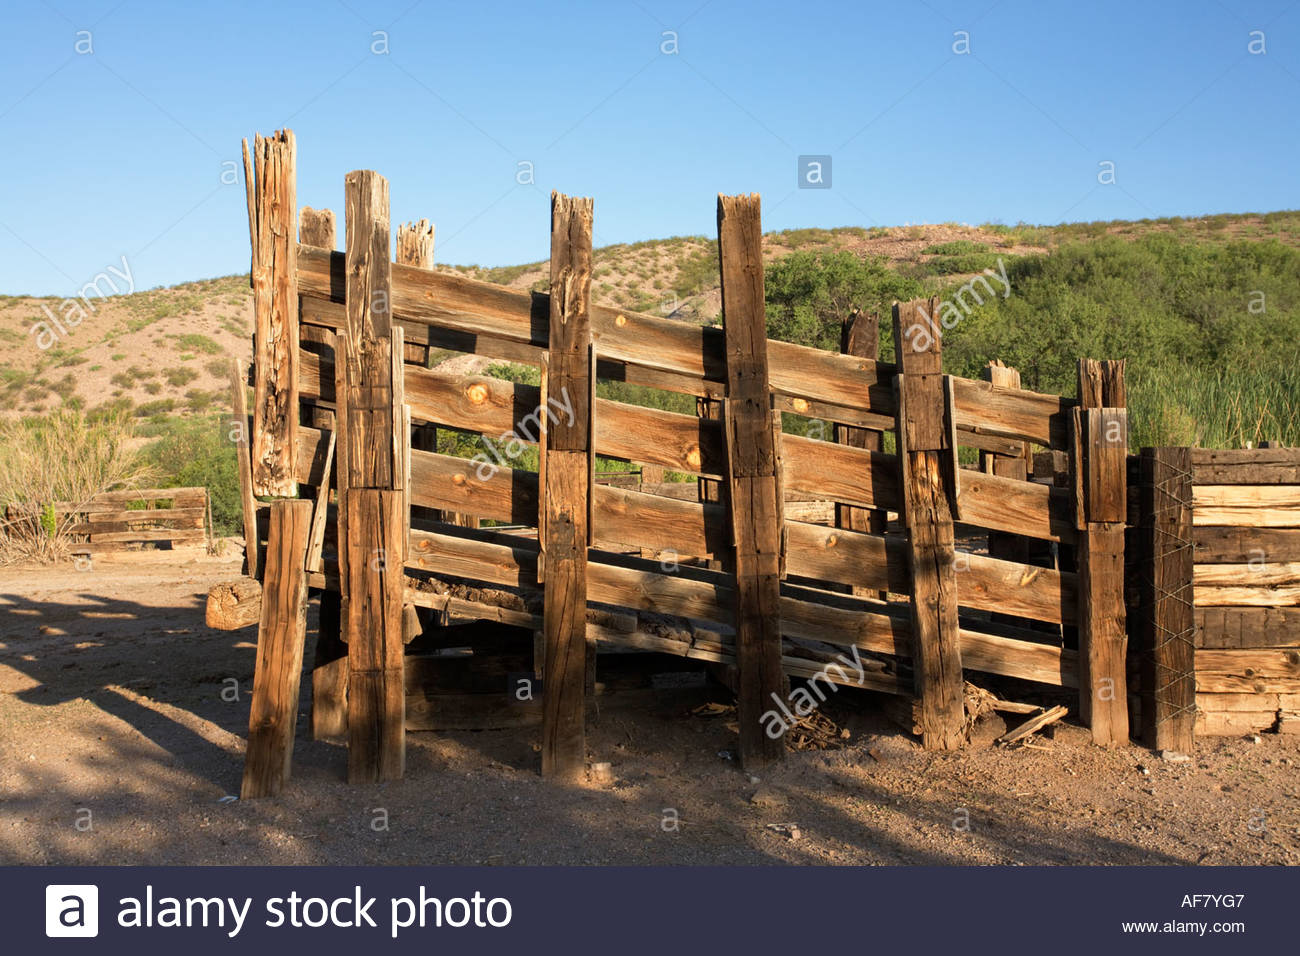 Wooden Load Out Chute For Loading Cattle Livestock Into Trucks Stock